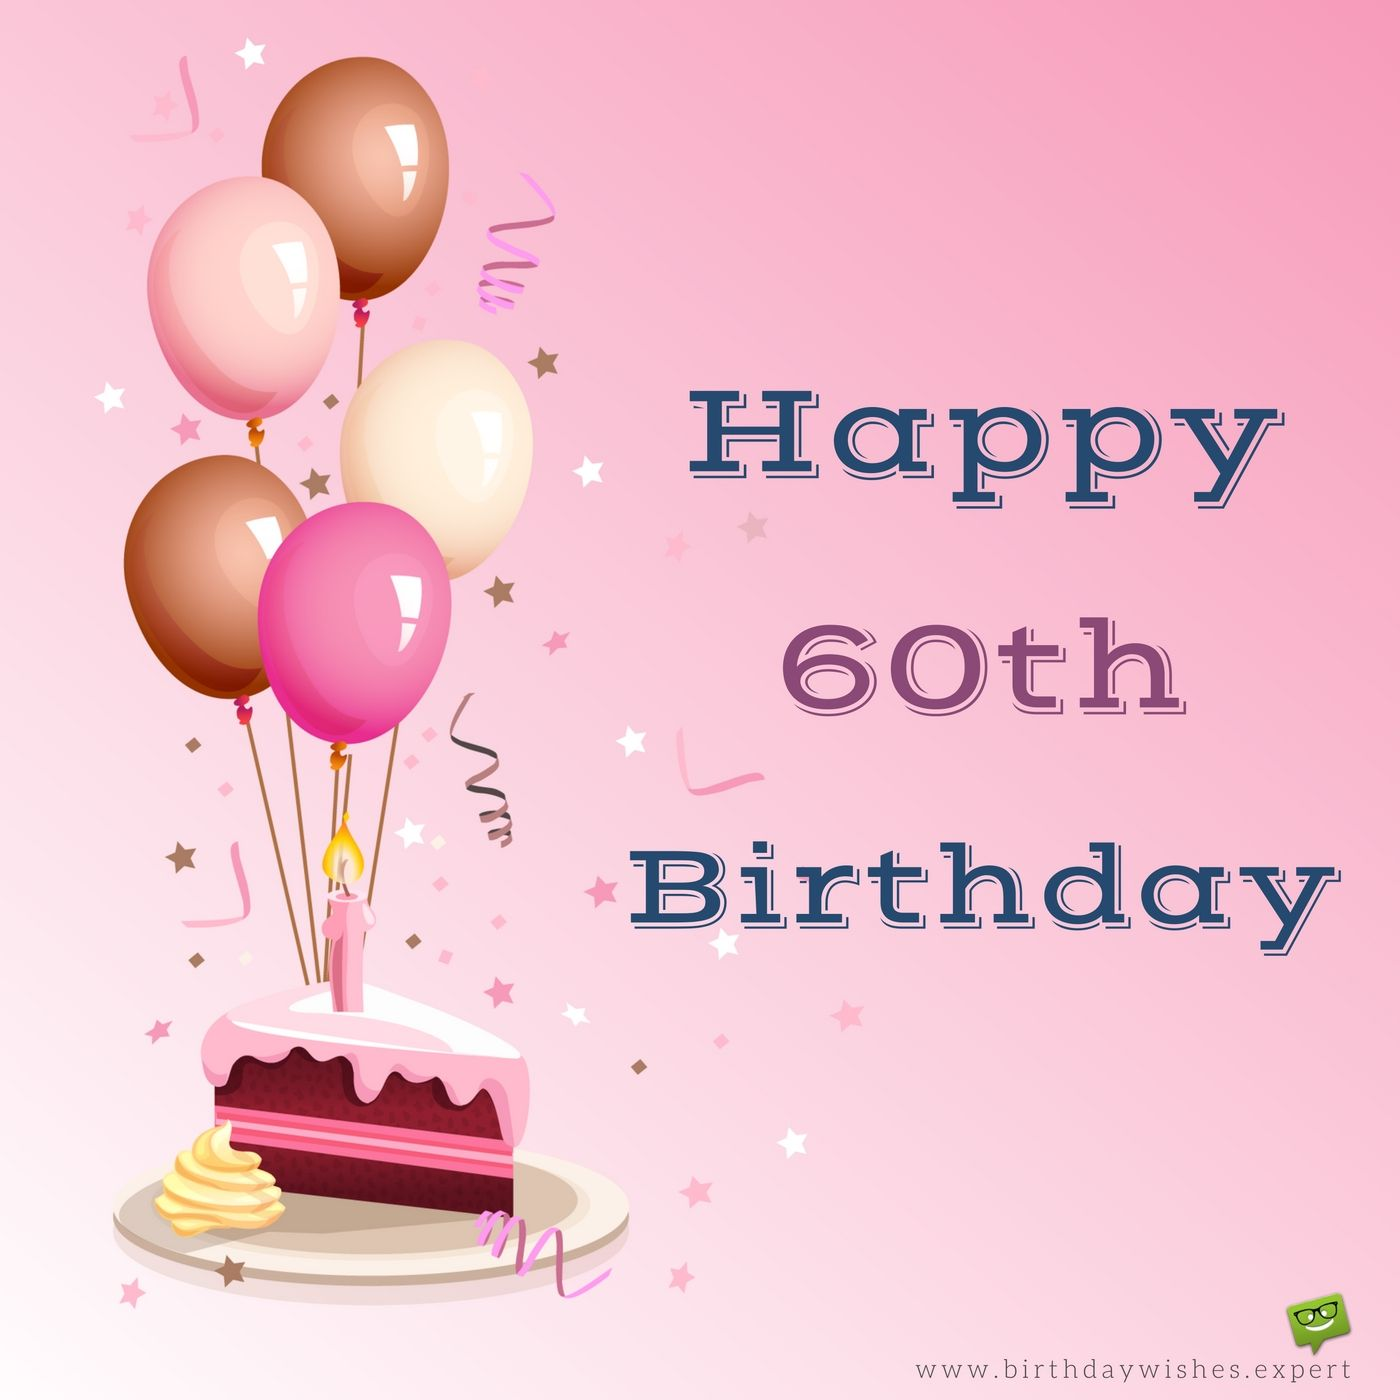 Not Old Classic Other Pinterest Happy 60th Birthday